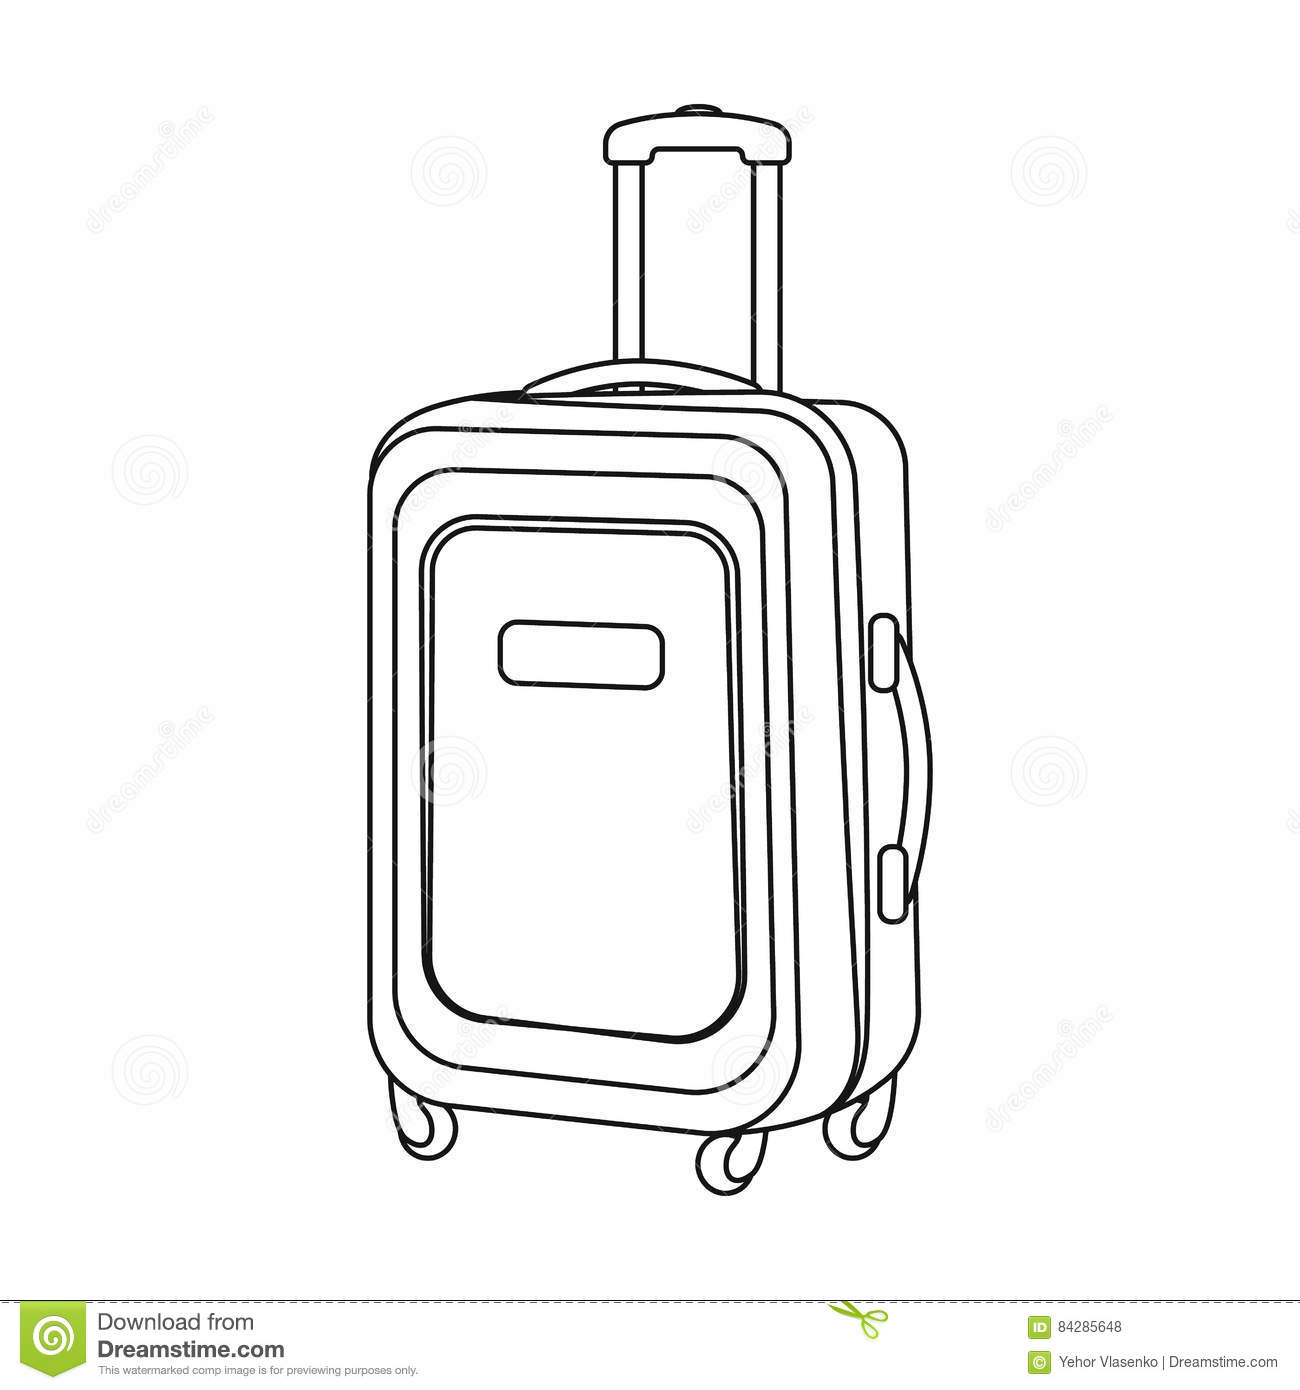 Travel Luggage Icon In Outline Style Isolated On White Background.